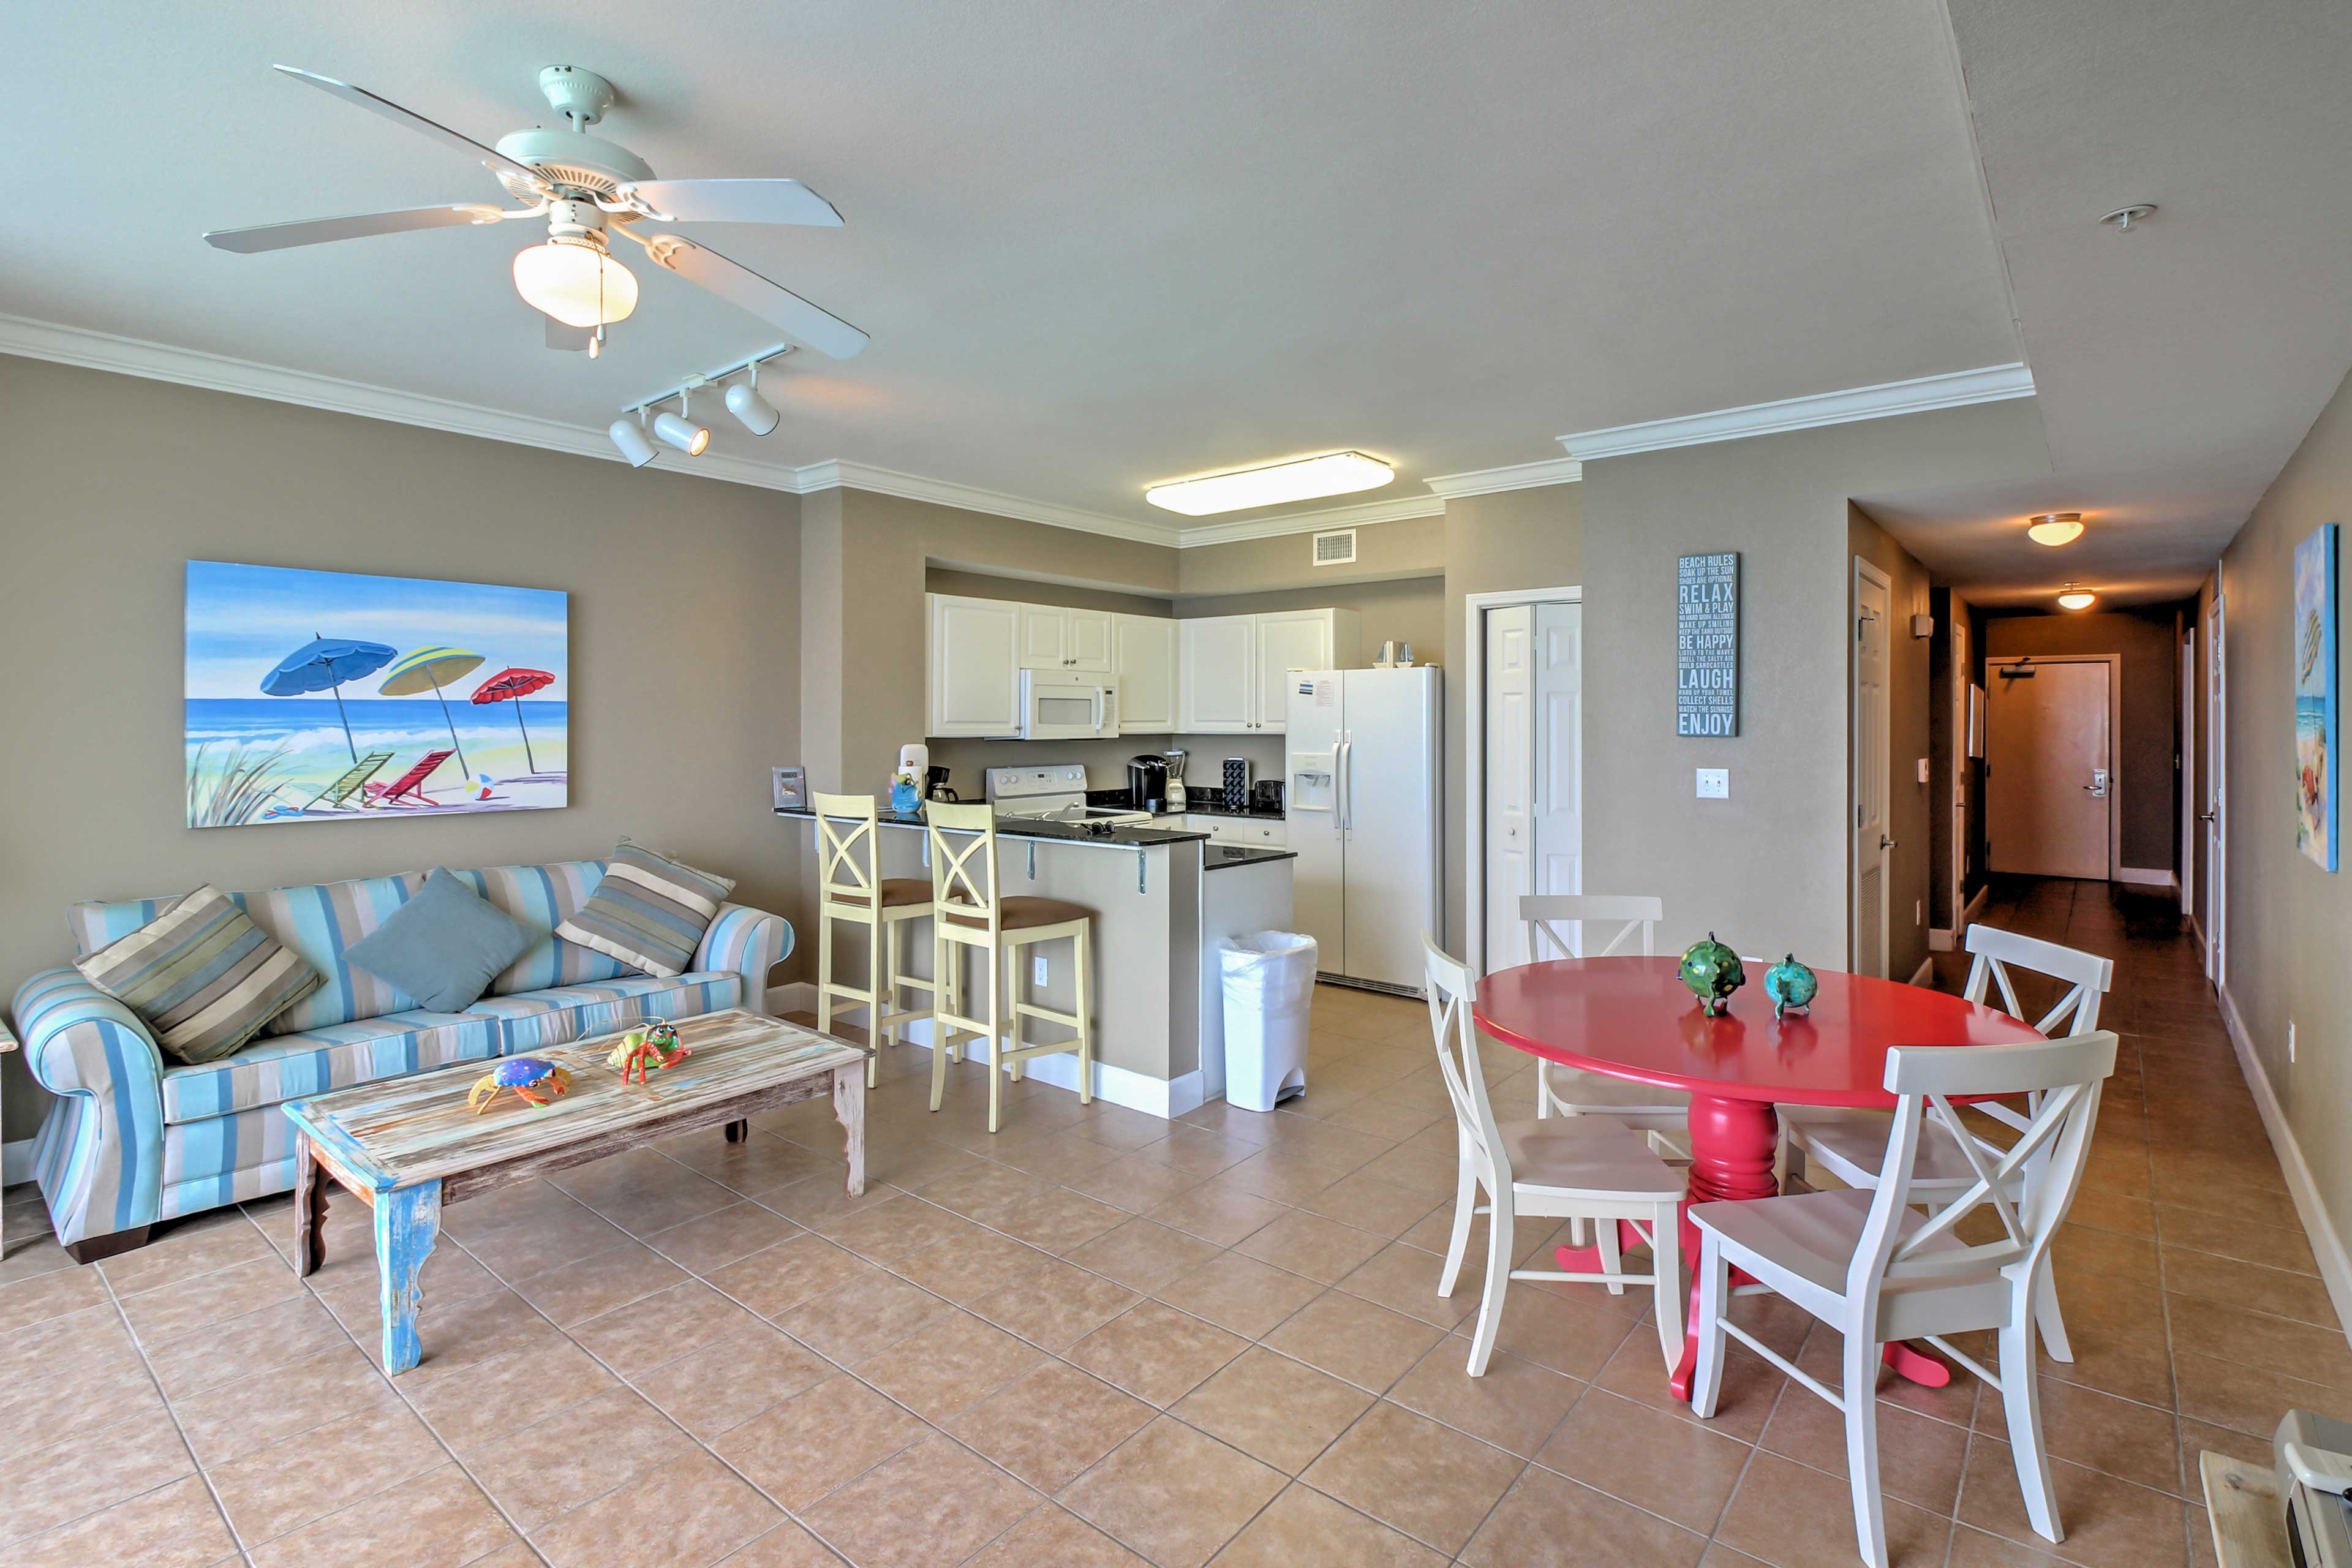 The unit boasts nearly 1,000 square feet of bright and airy living space.